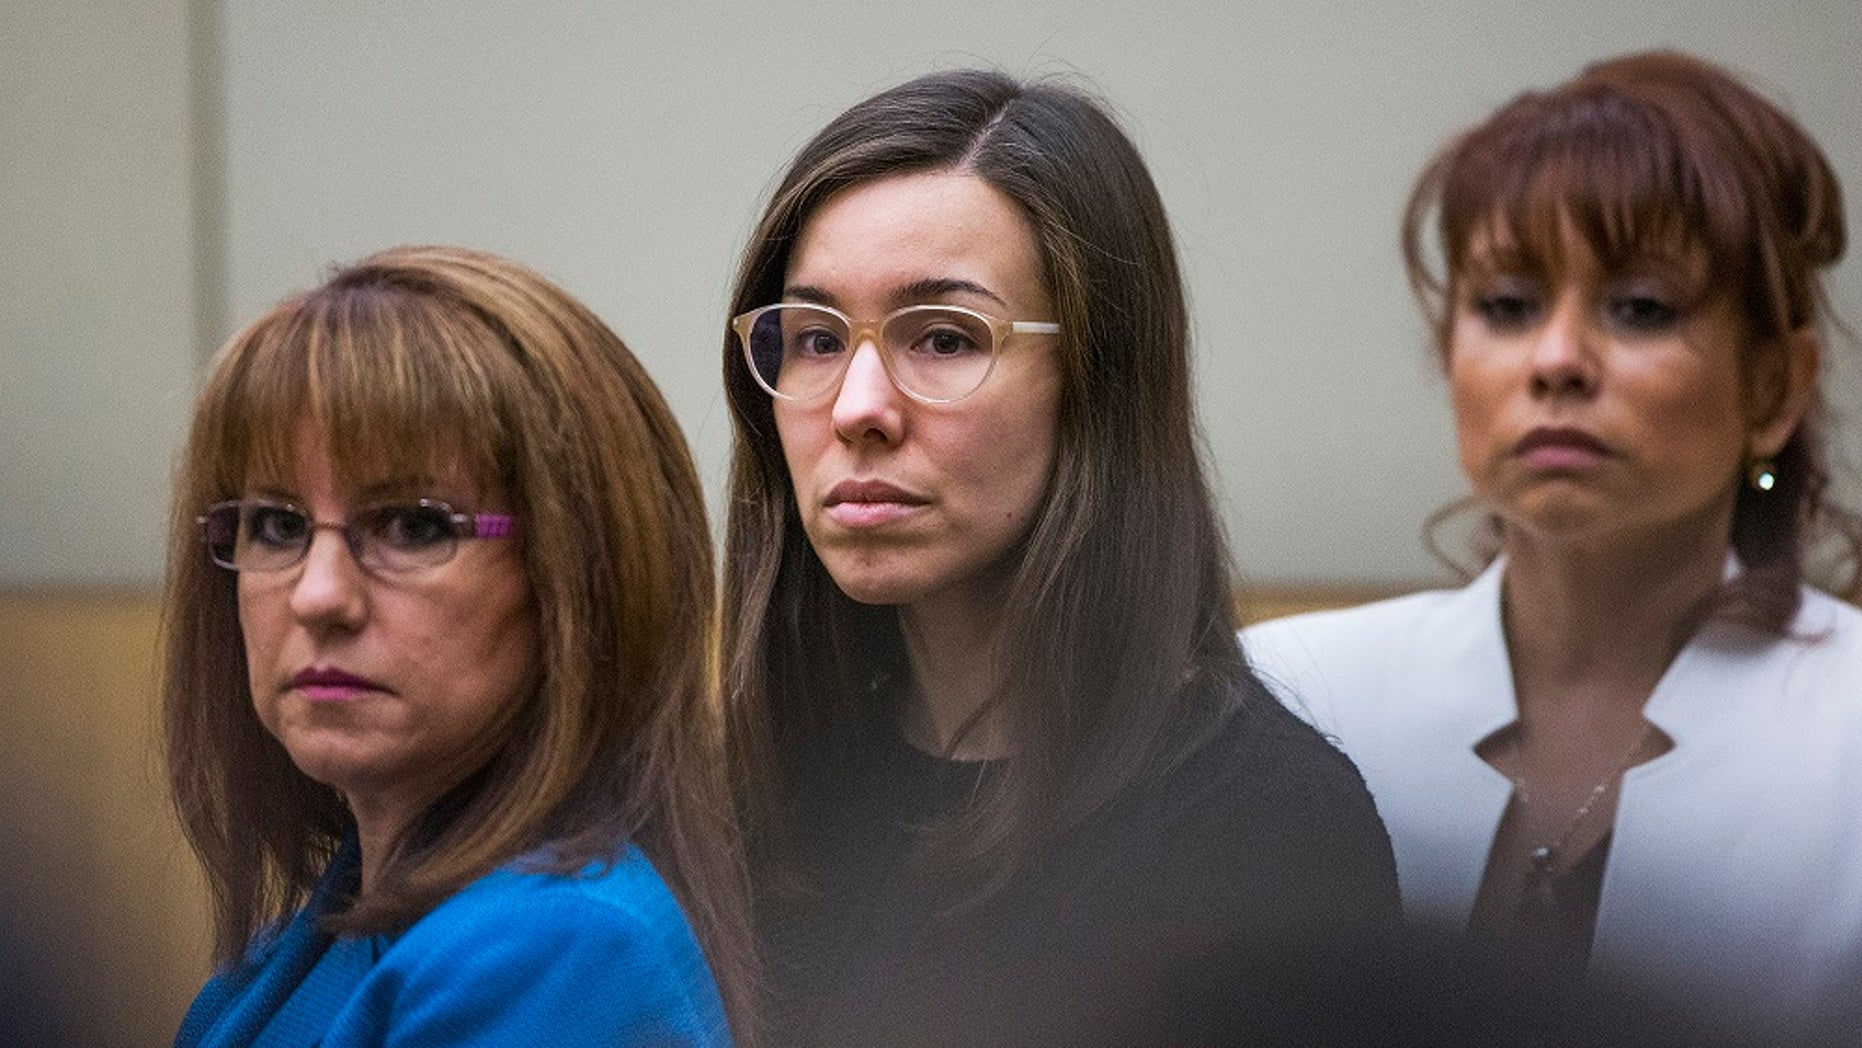 Jodi Arias, center, watches the jury enter the courtroom for her sentencing phase retrial in Phoenix, March 5, 2015.